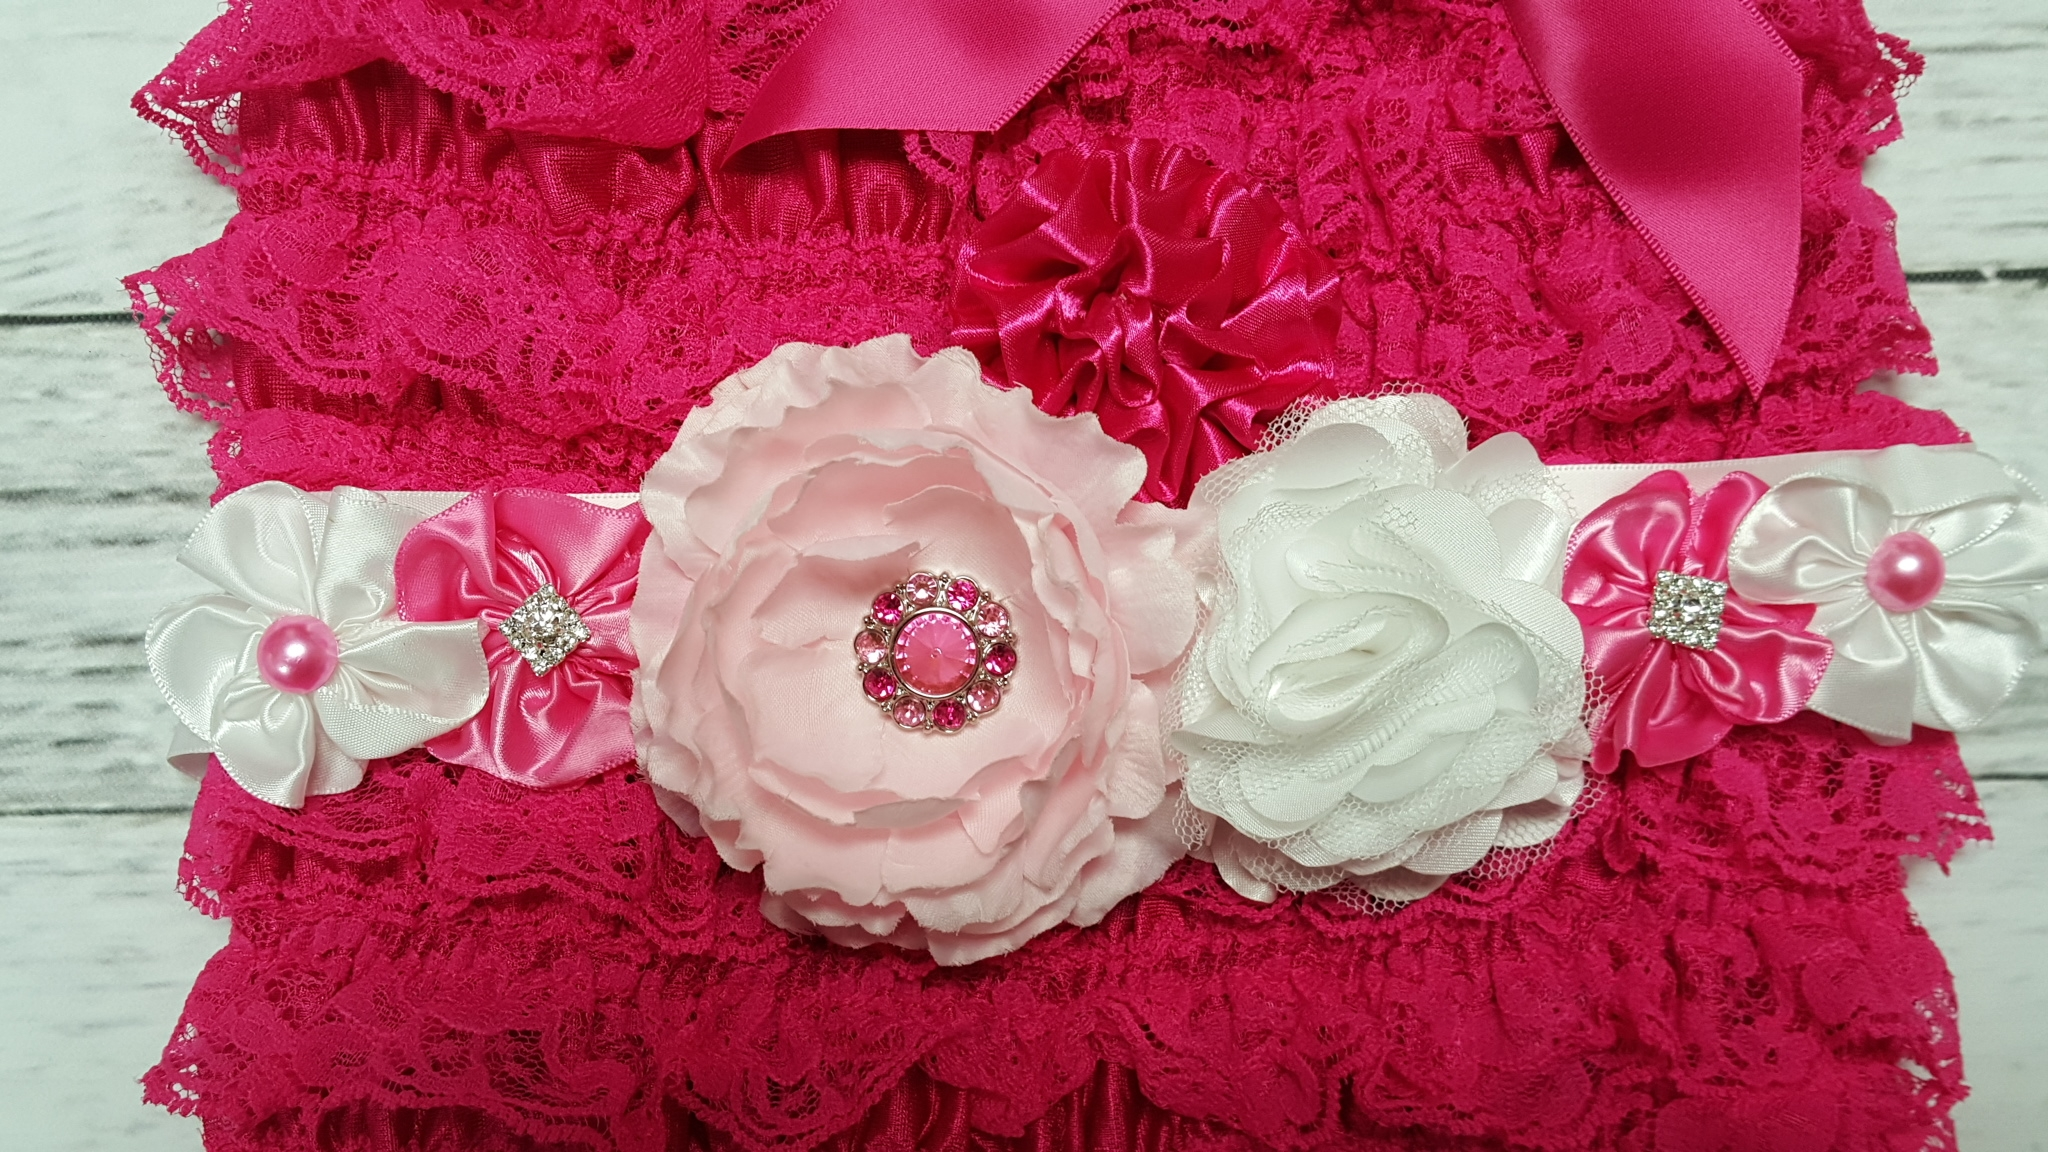 Hot Pink Lace Ruffle Petti Romper With White Pink Flower Sash And